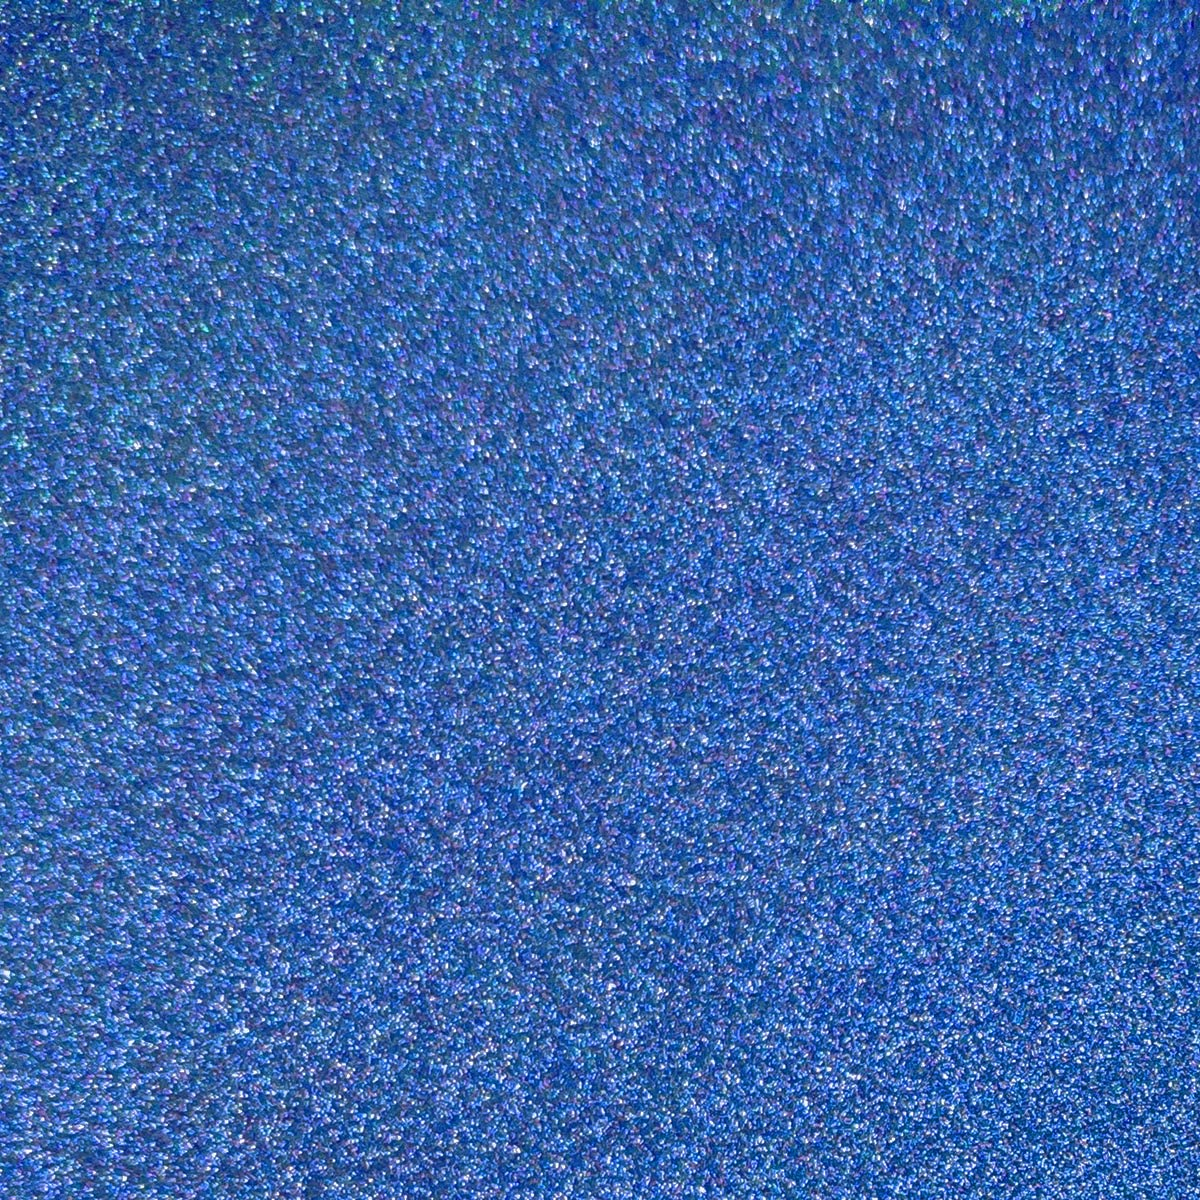 Misscrafts Glitter Paper Card Stock A4 10 Colours to Celebrate Party Make Sparkling Card